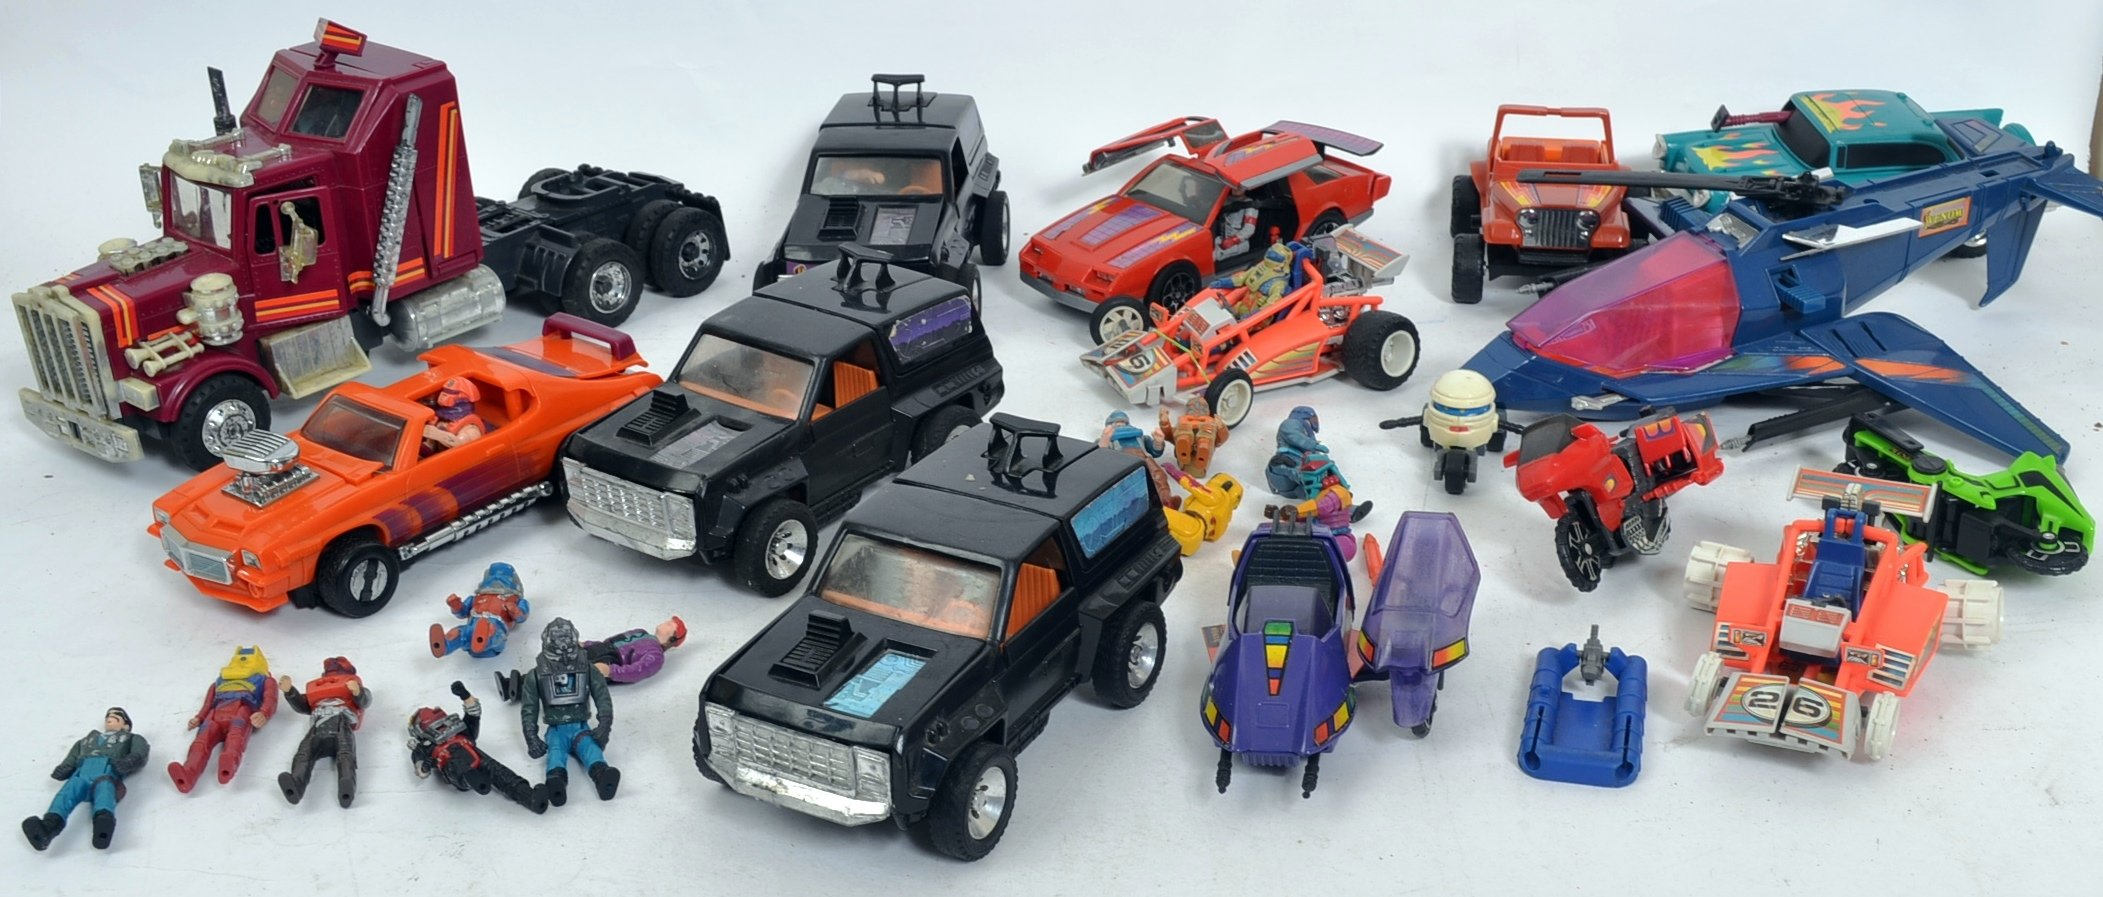 2 22 This Is The News M.A.S.K. Fans Have Been Waiting 30 Years For!